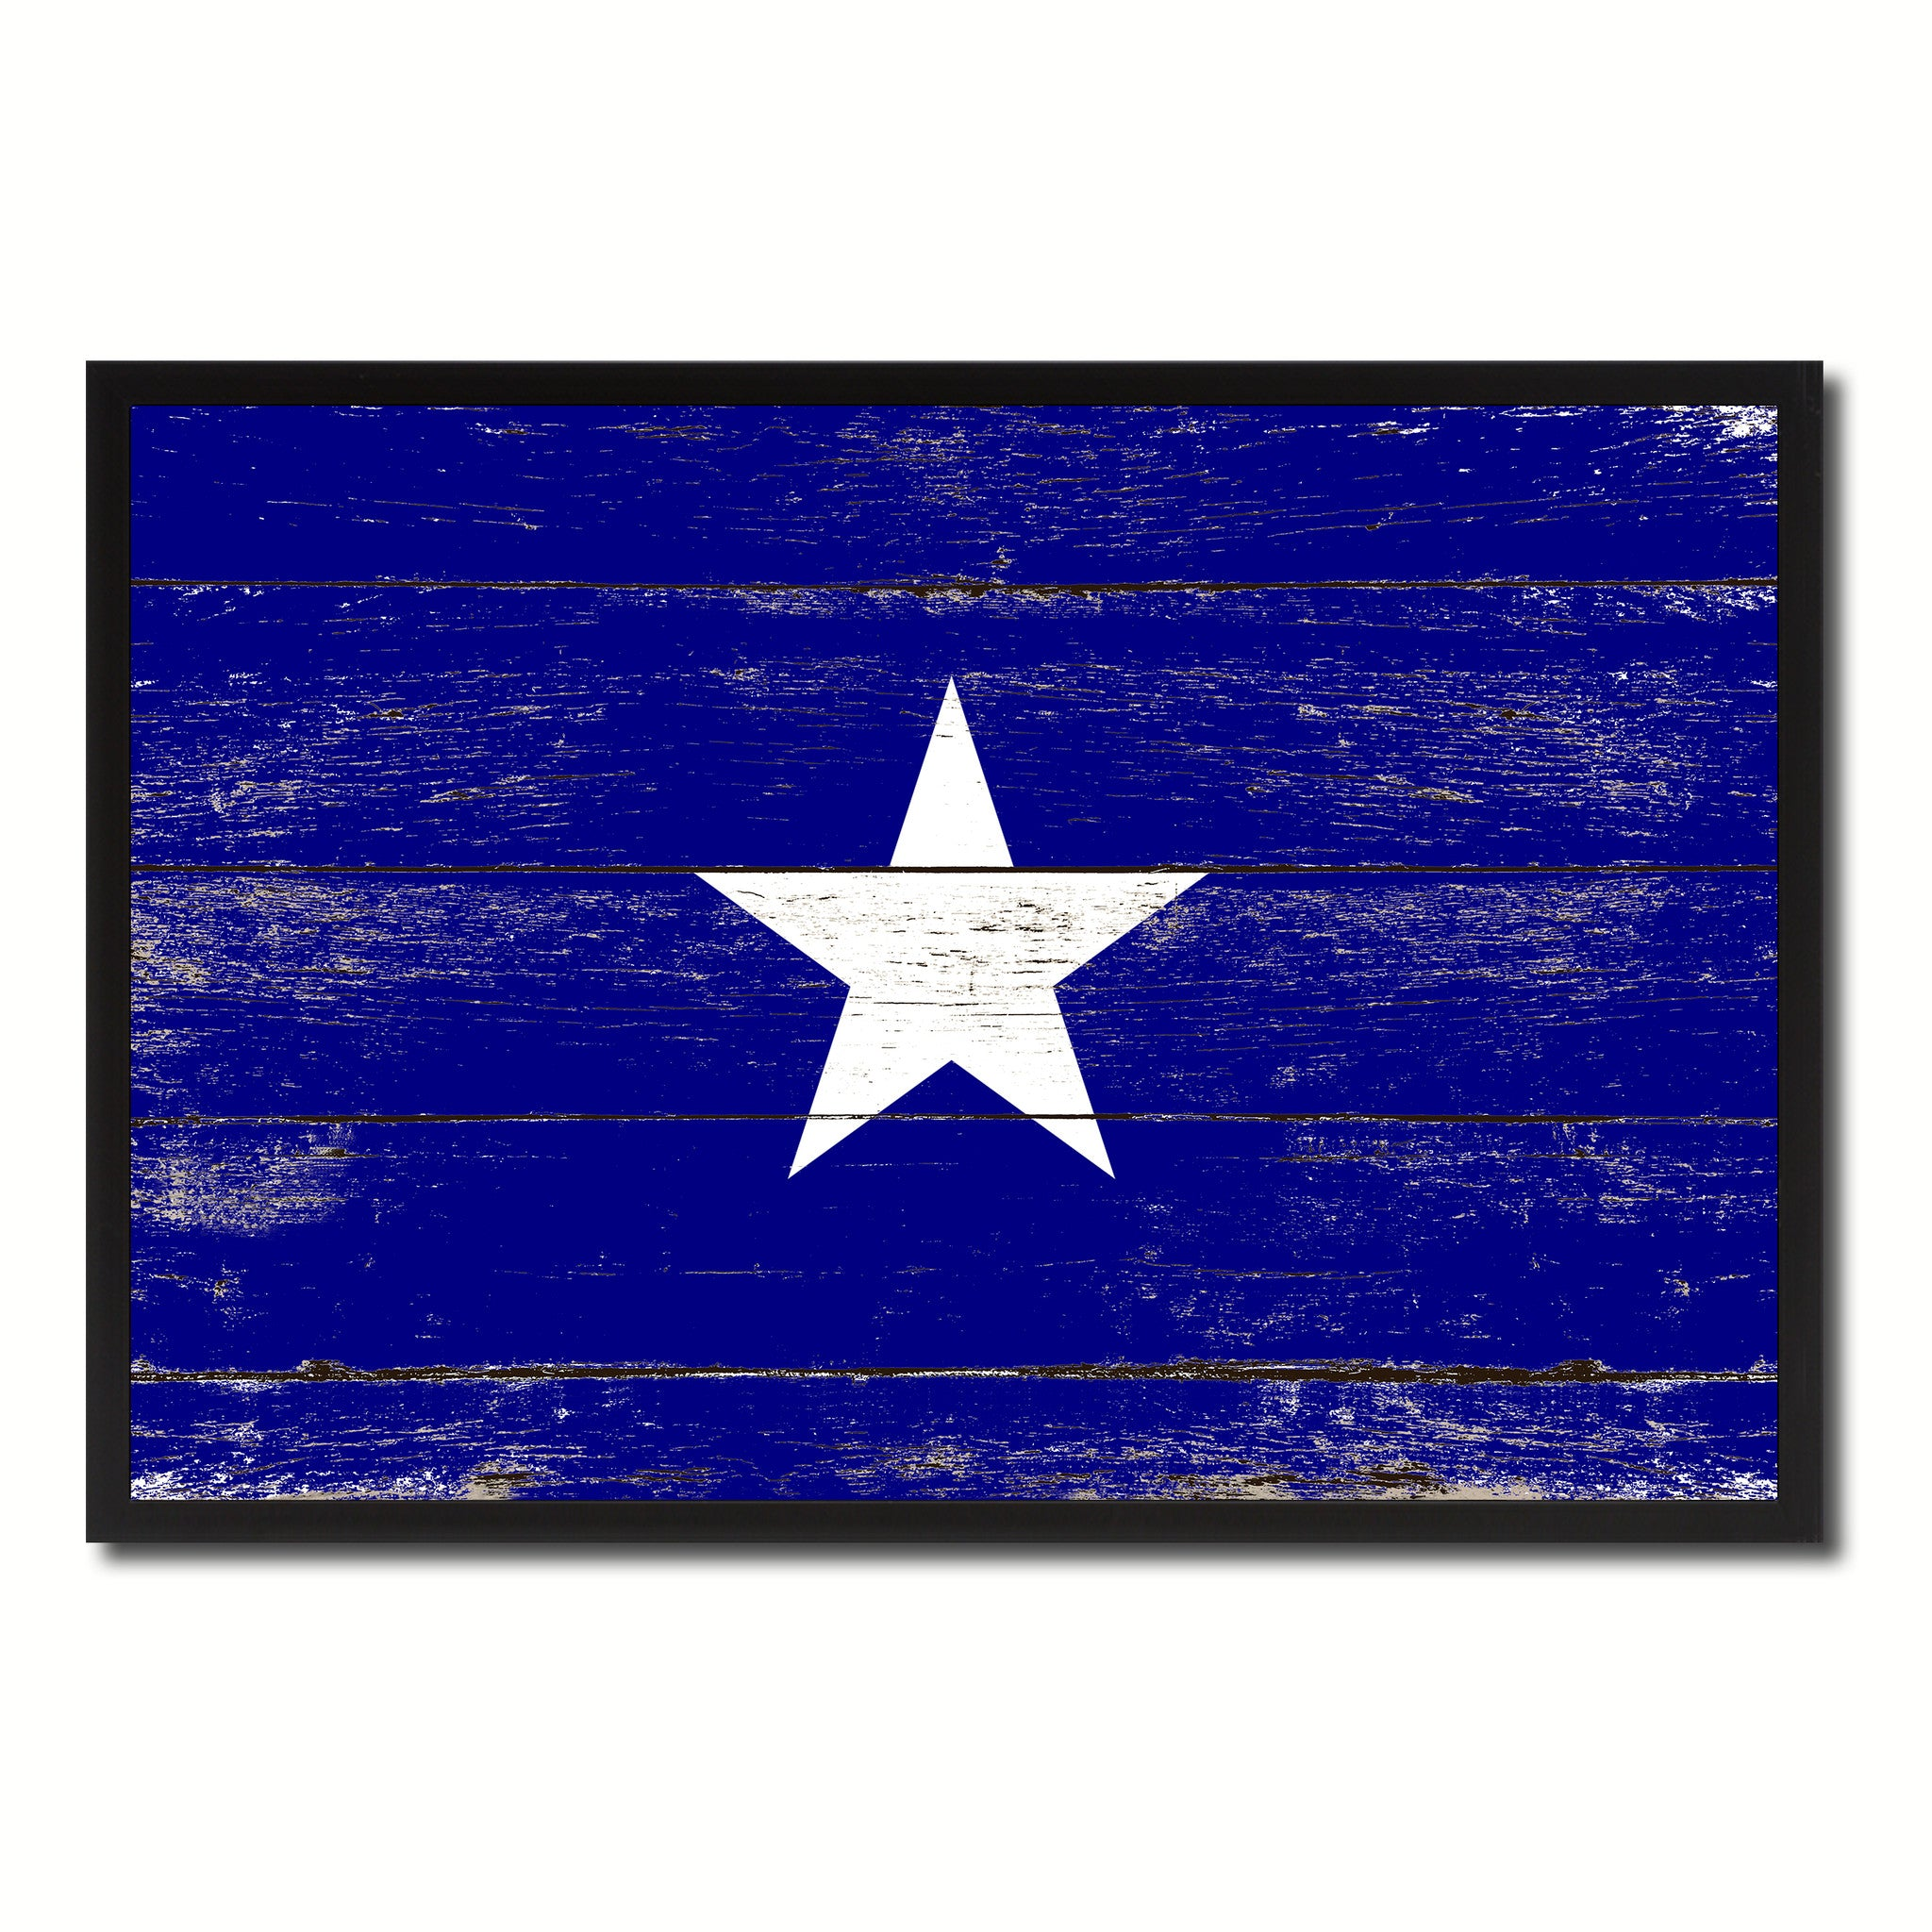 Bonnie Blue in Republic of West Florida Military Flag Vintage Canvas Print with Picture Frame Home Decor Man Cave Wall Art Collectible Decoration Artwork Gifts